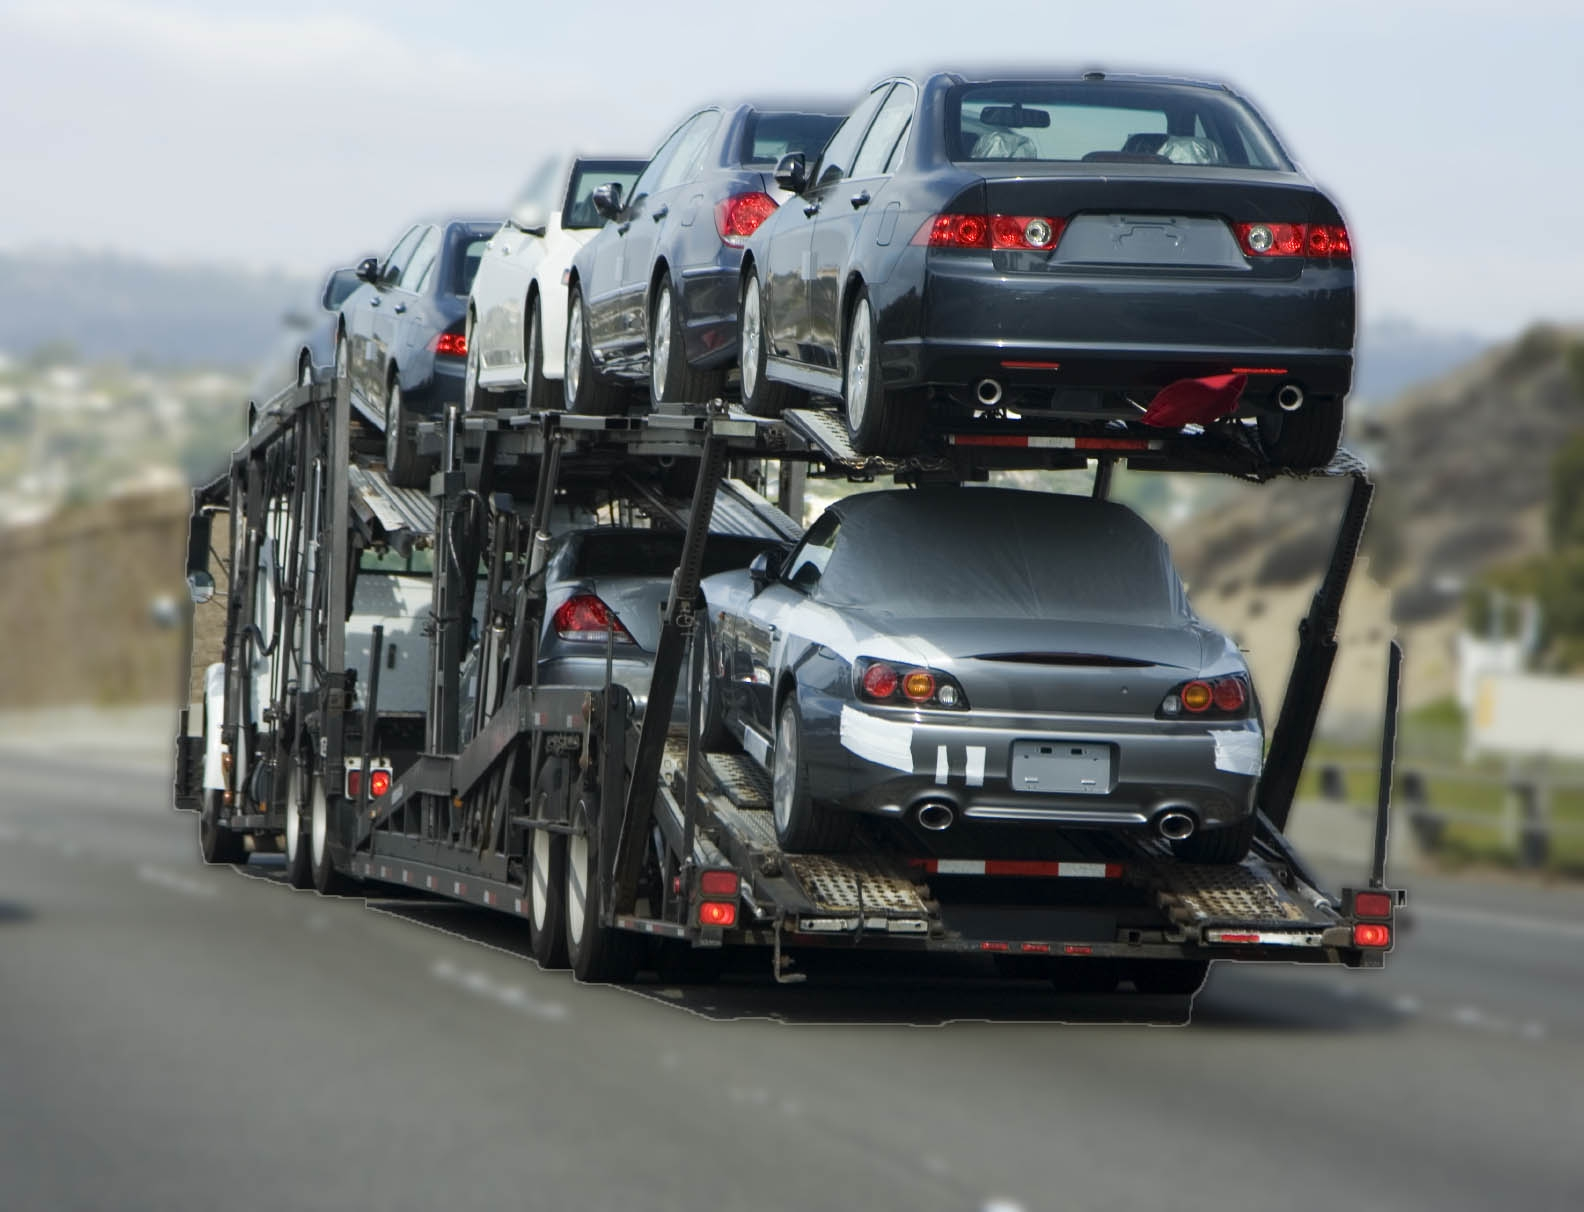 Relocating abroad - why choose international vehicle transport services